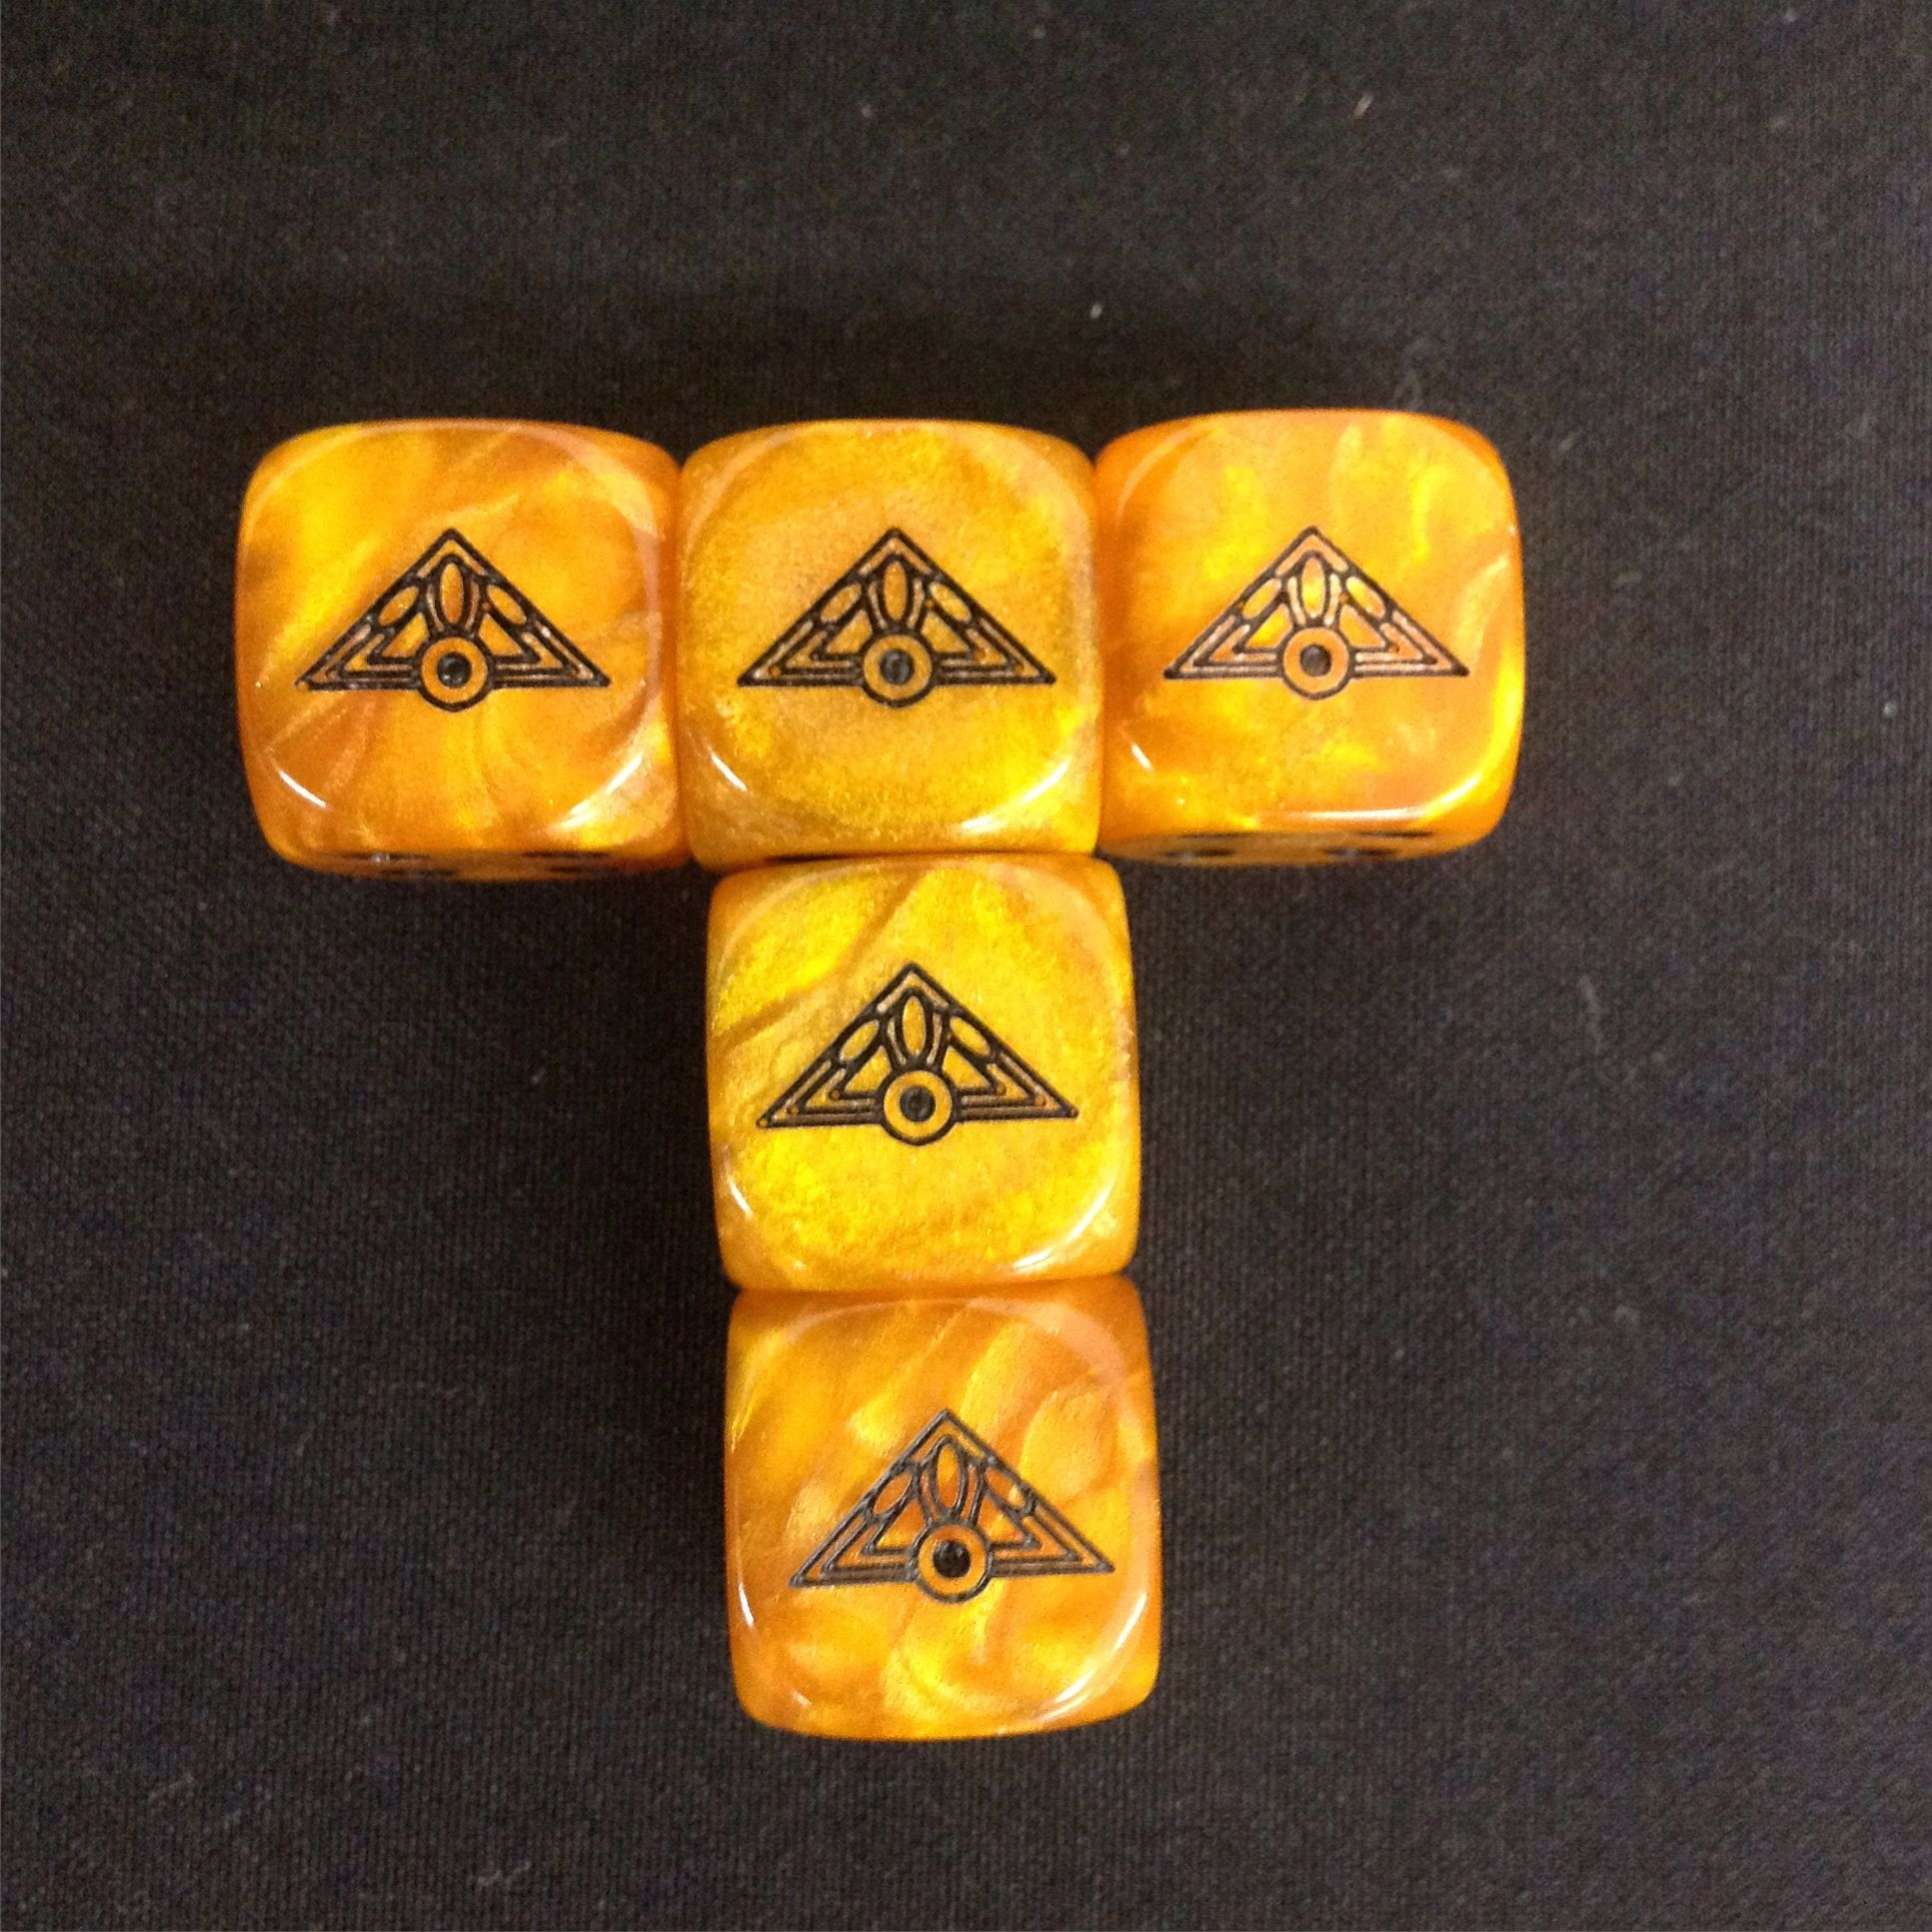 Dice from the Talisman magical quest board game. Games